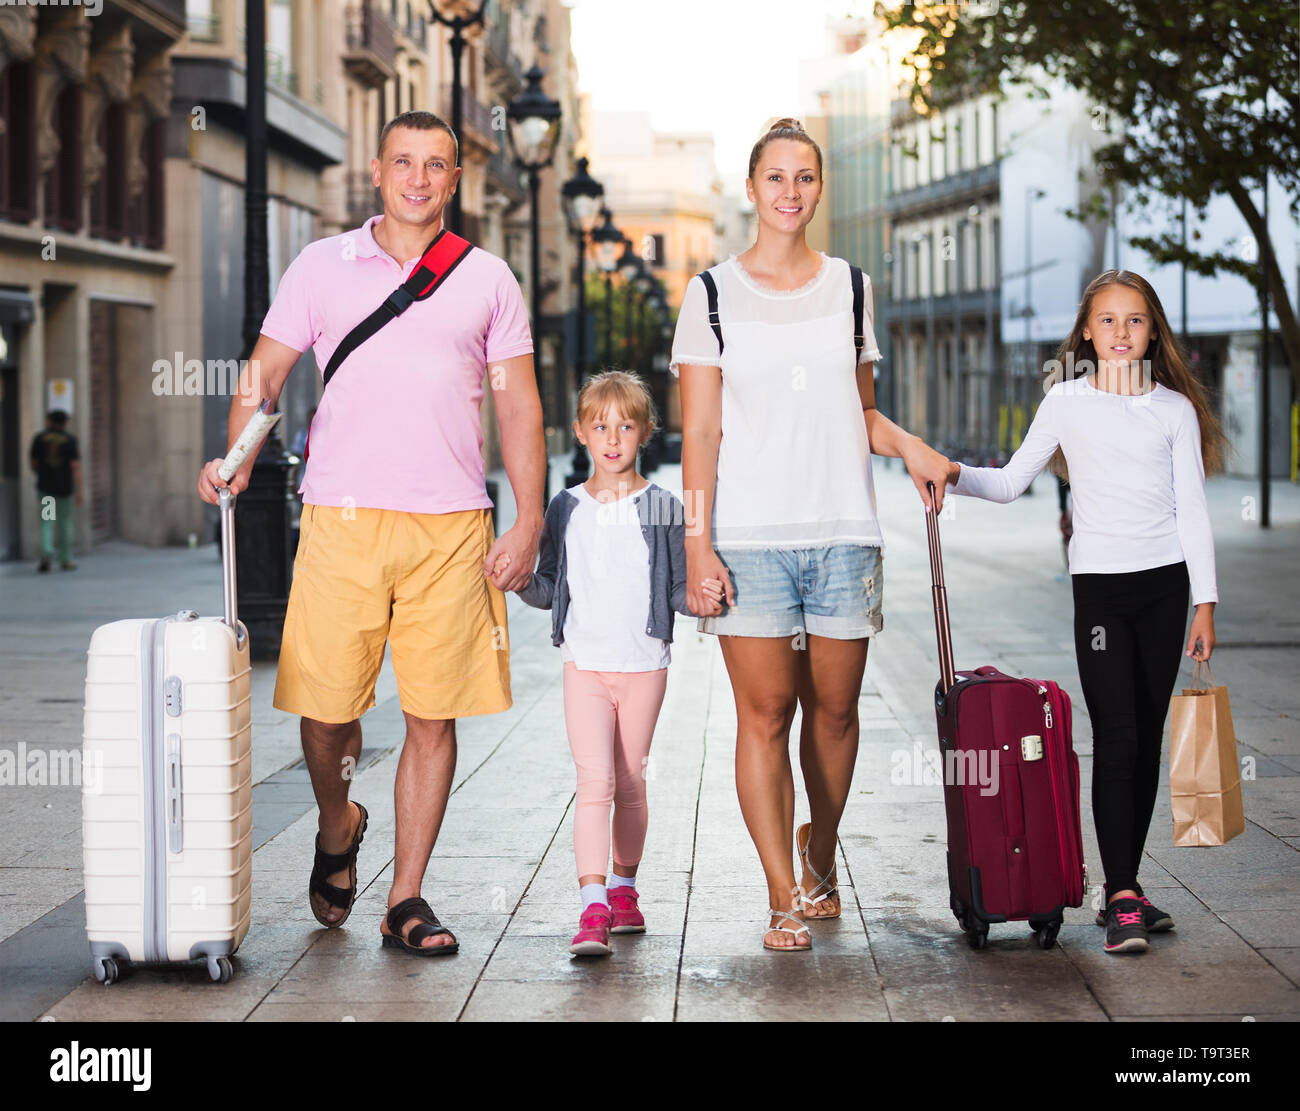 Parents with two kids travelling together on city, walking with luggage - Stock Image